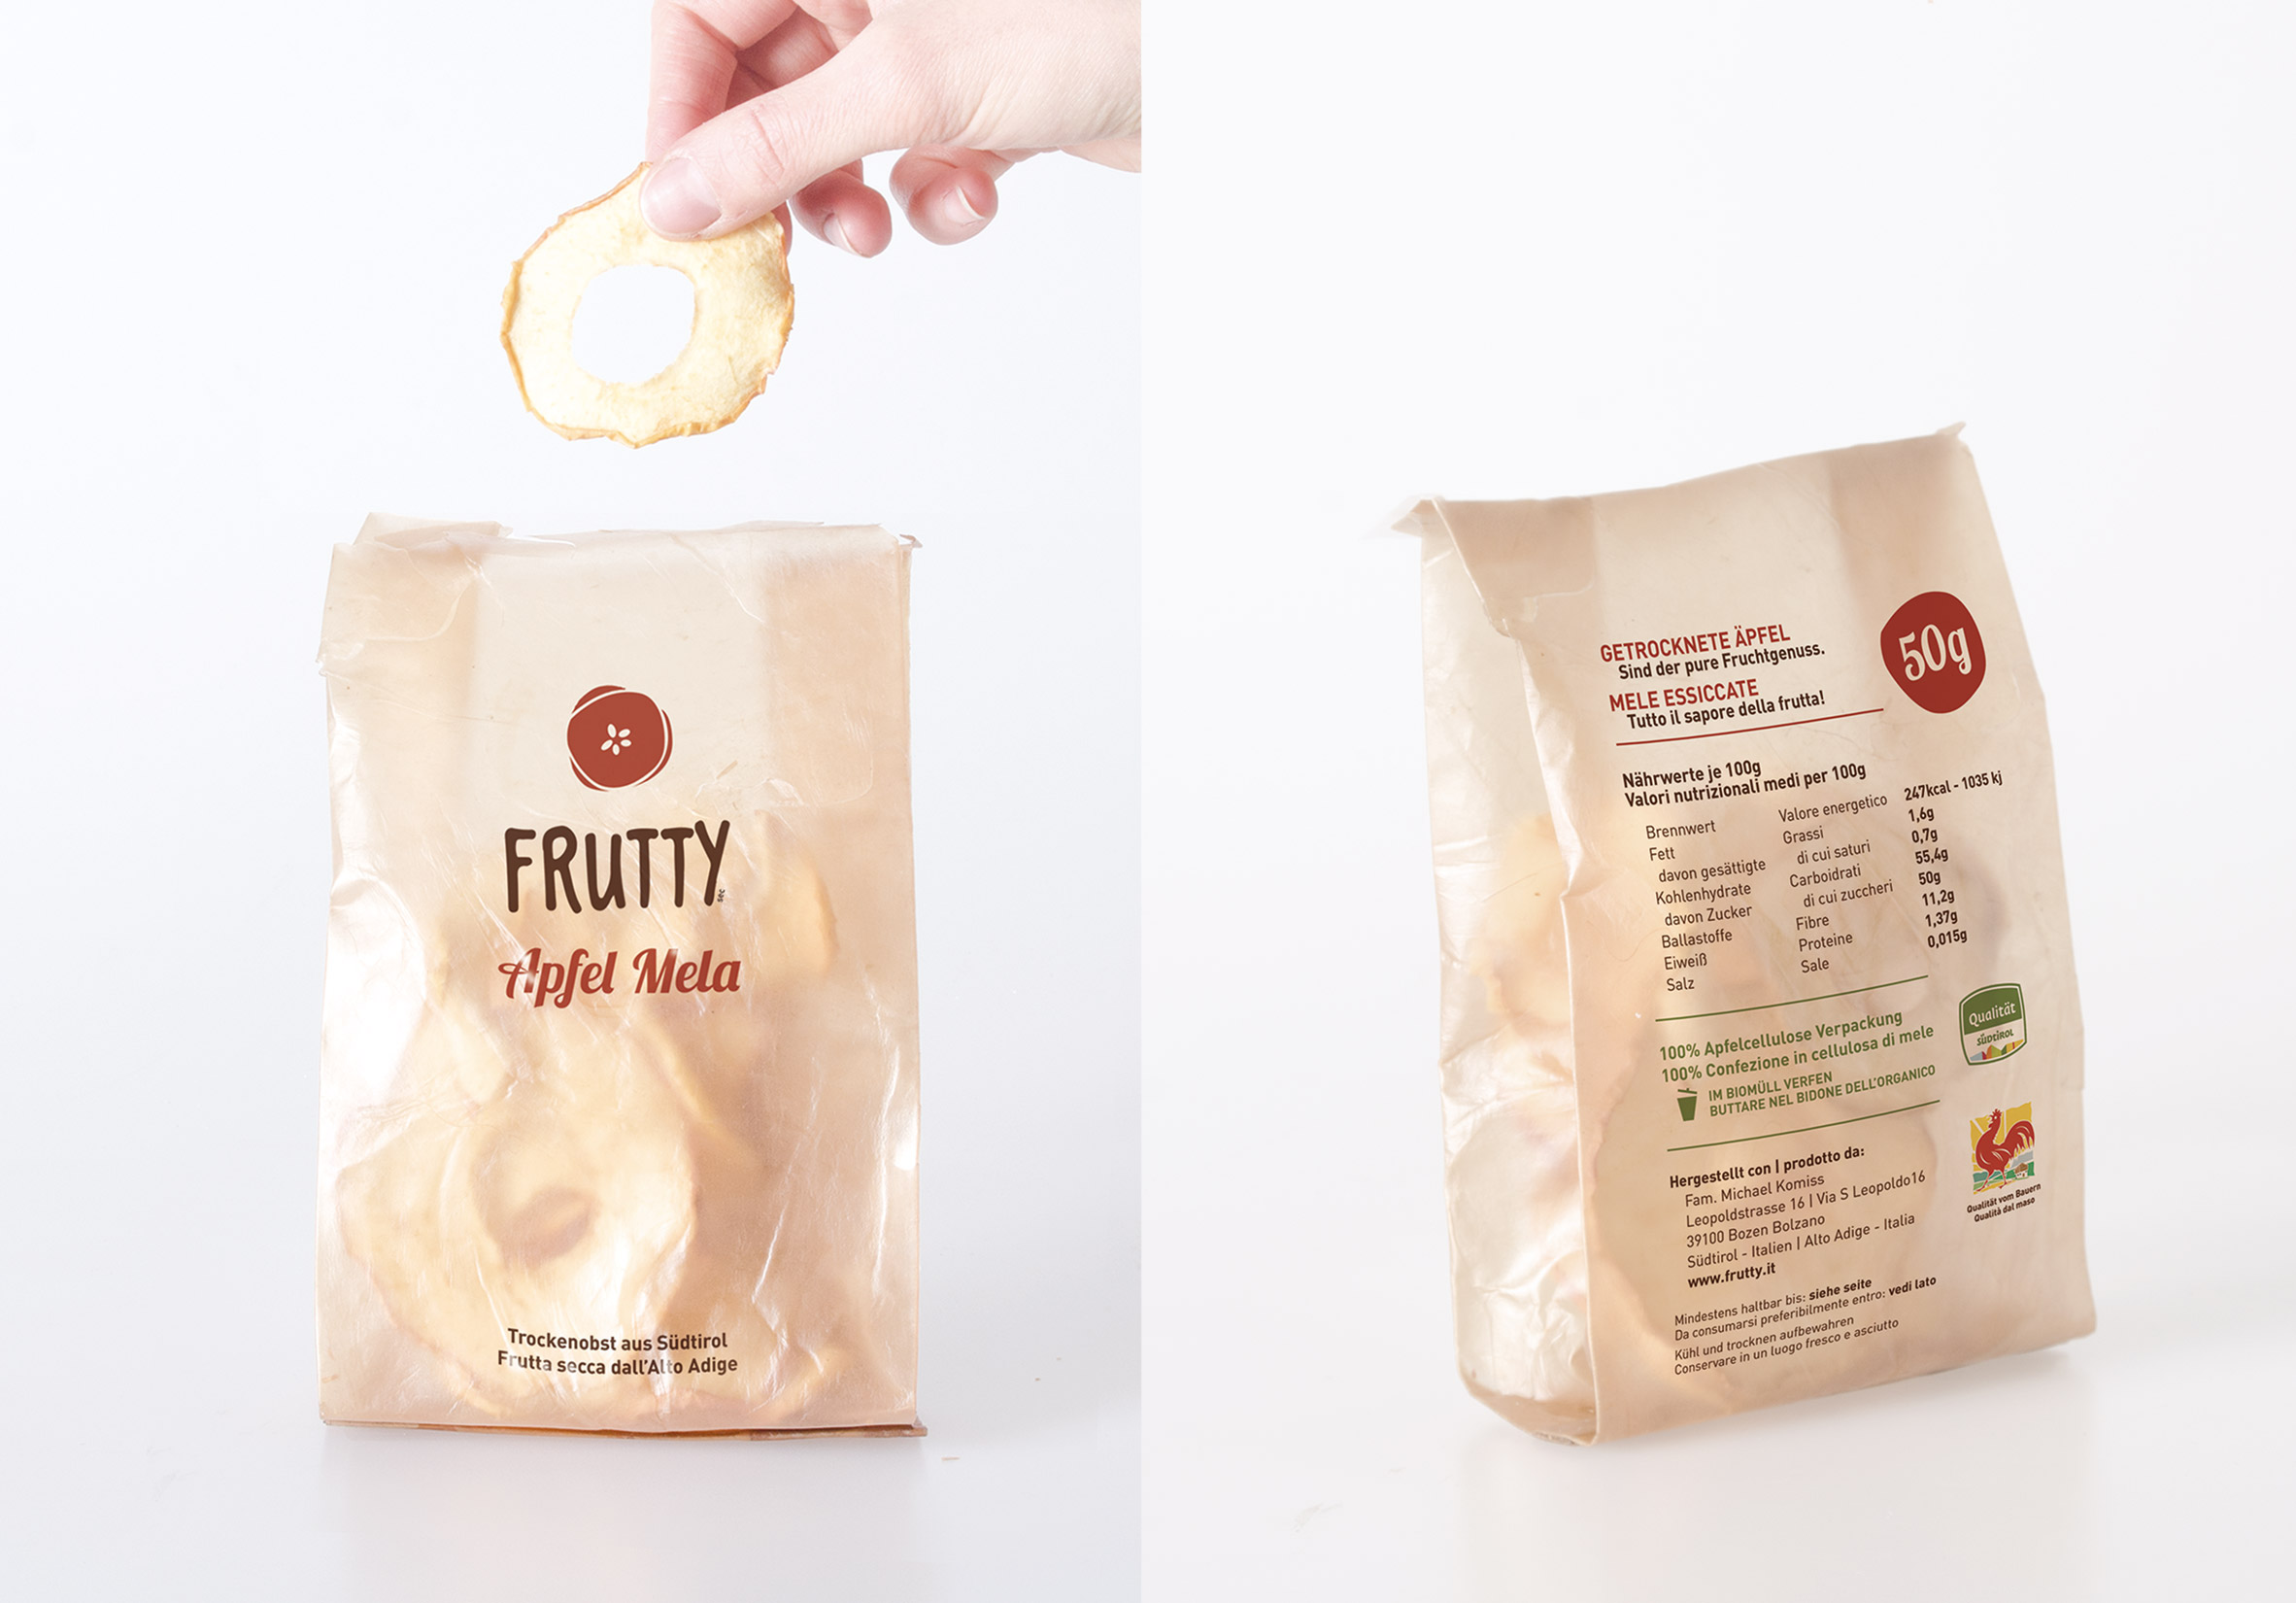 from-peel-to-peel-packaging-design_dezeen_2364_col_1.jpg